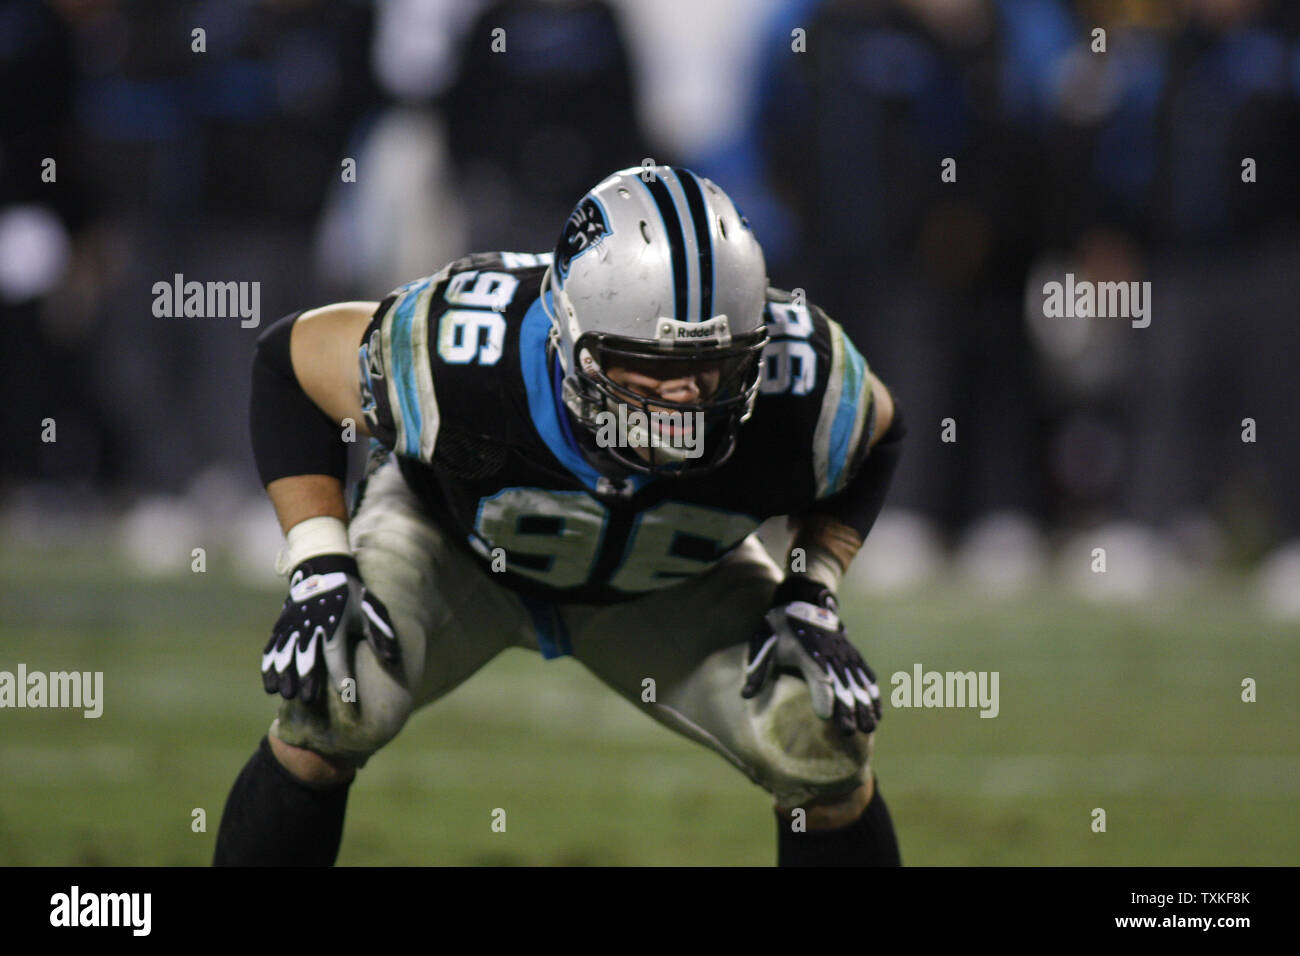 Carolina Panthers defensive end Tyler Brayton (96) blocks during a point after try against the Tampa Bay Buccaneers at Bank of America Stadium on December 8, 2008 in Charlotte, North Carolina.   (UPI Photo/Bob Carey) Stock Photo